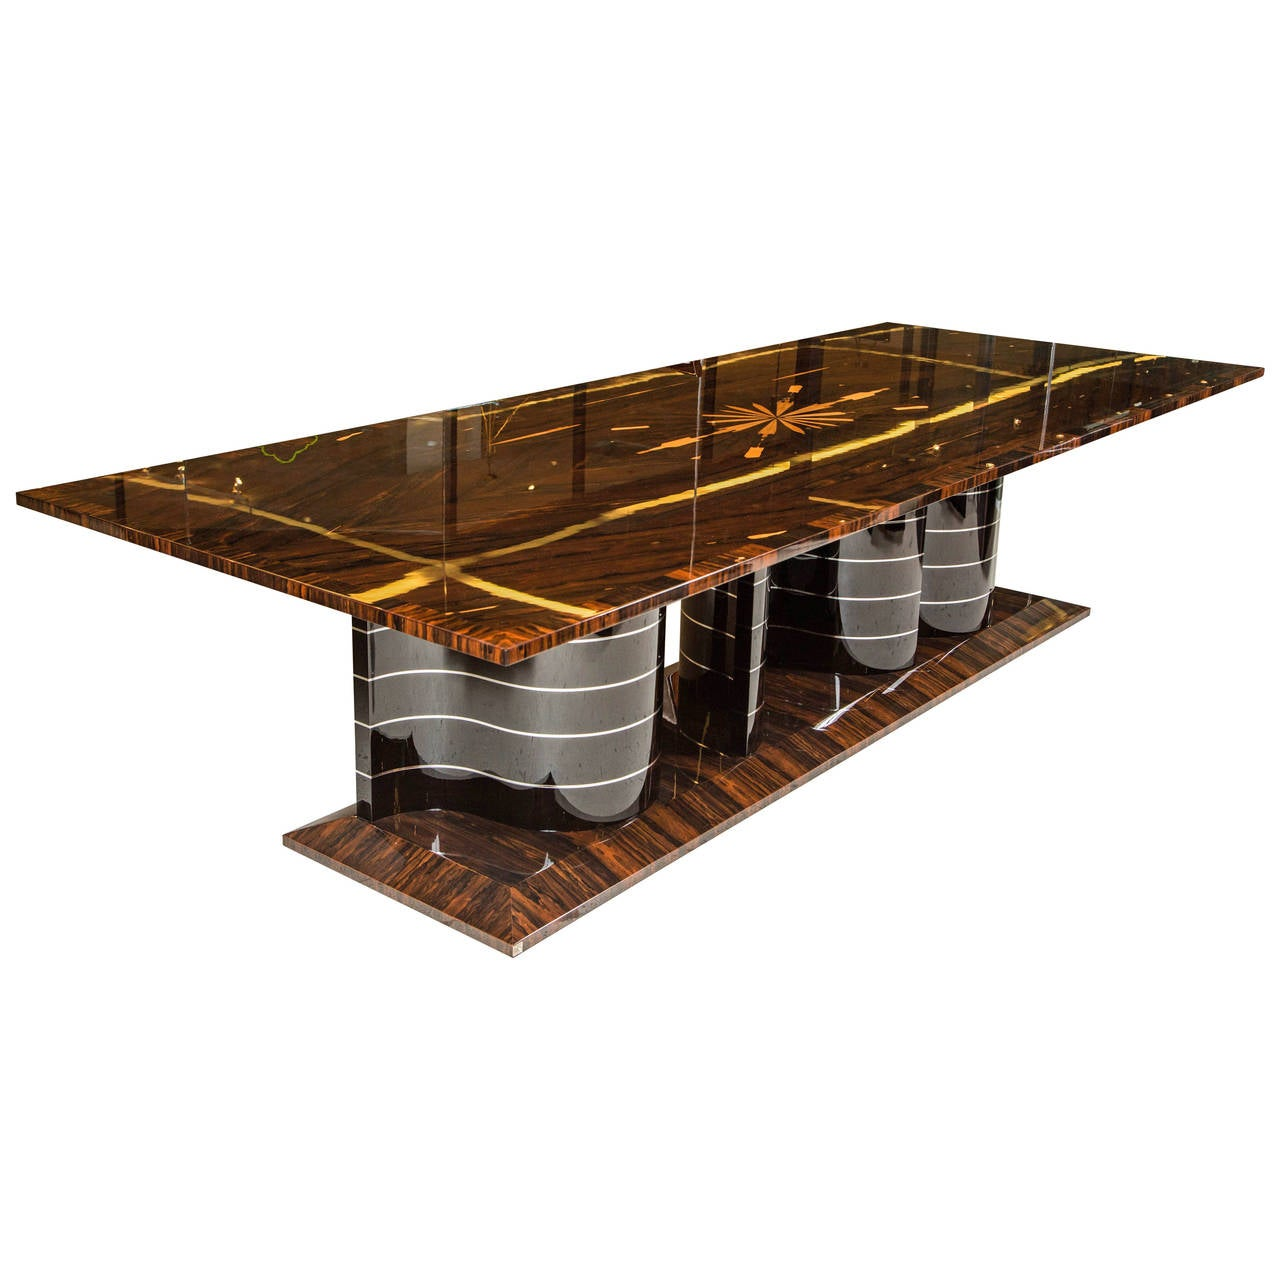 Contemporary art deco style dining table at 1stdibs - Art deco dining room table ...